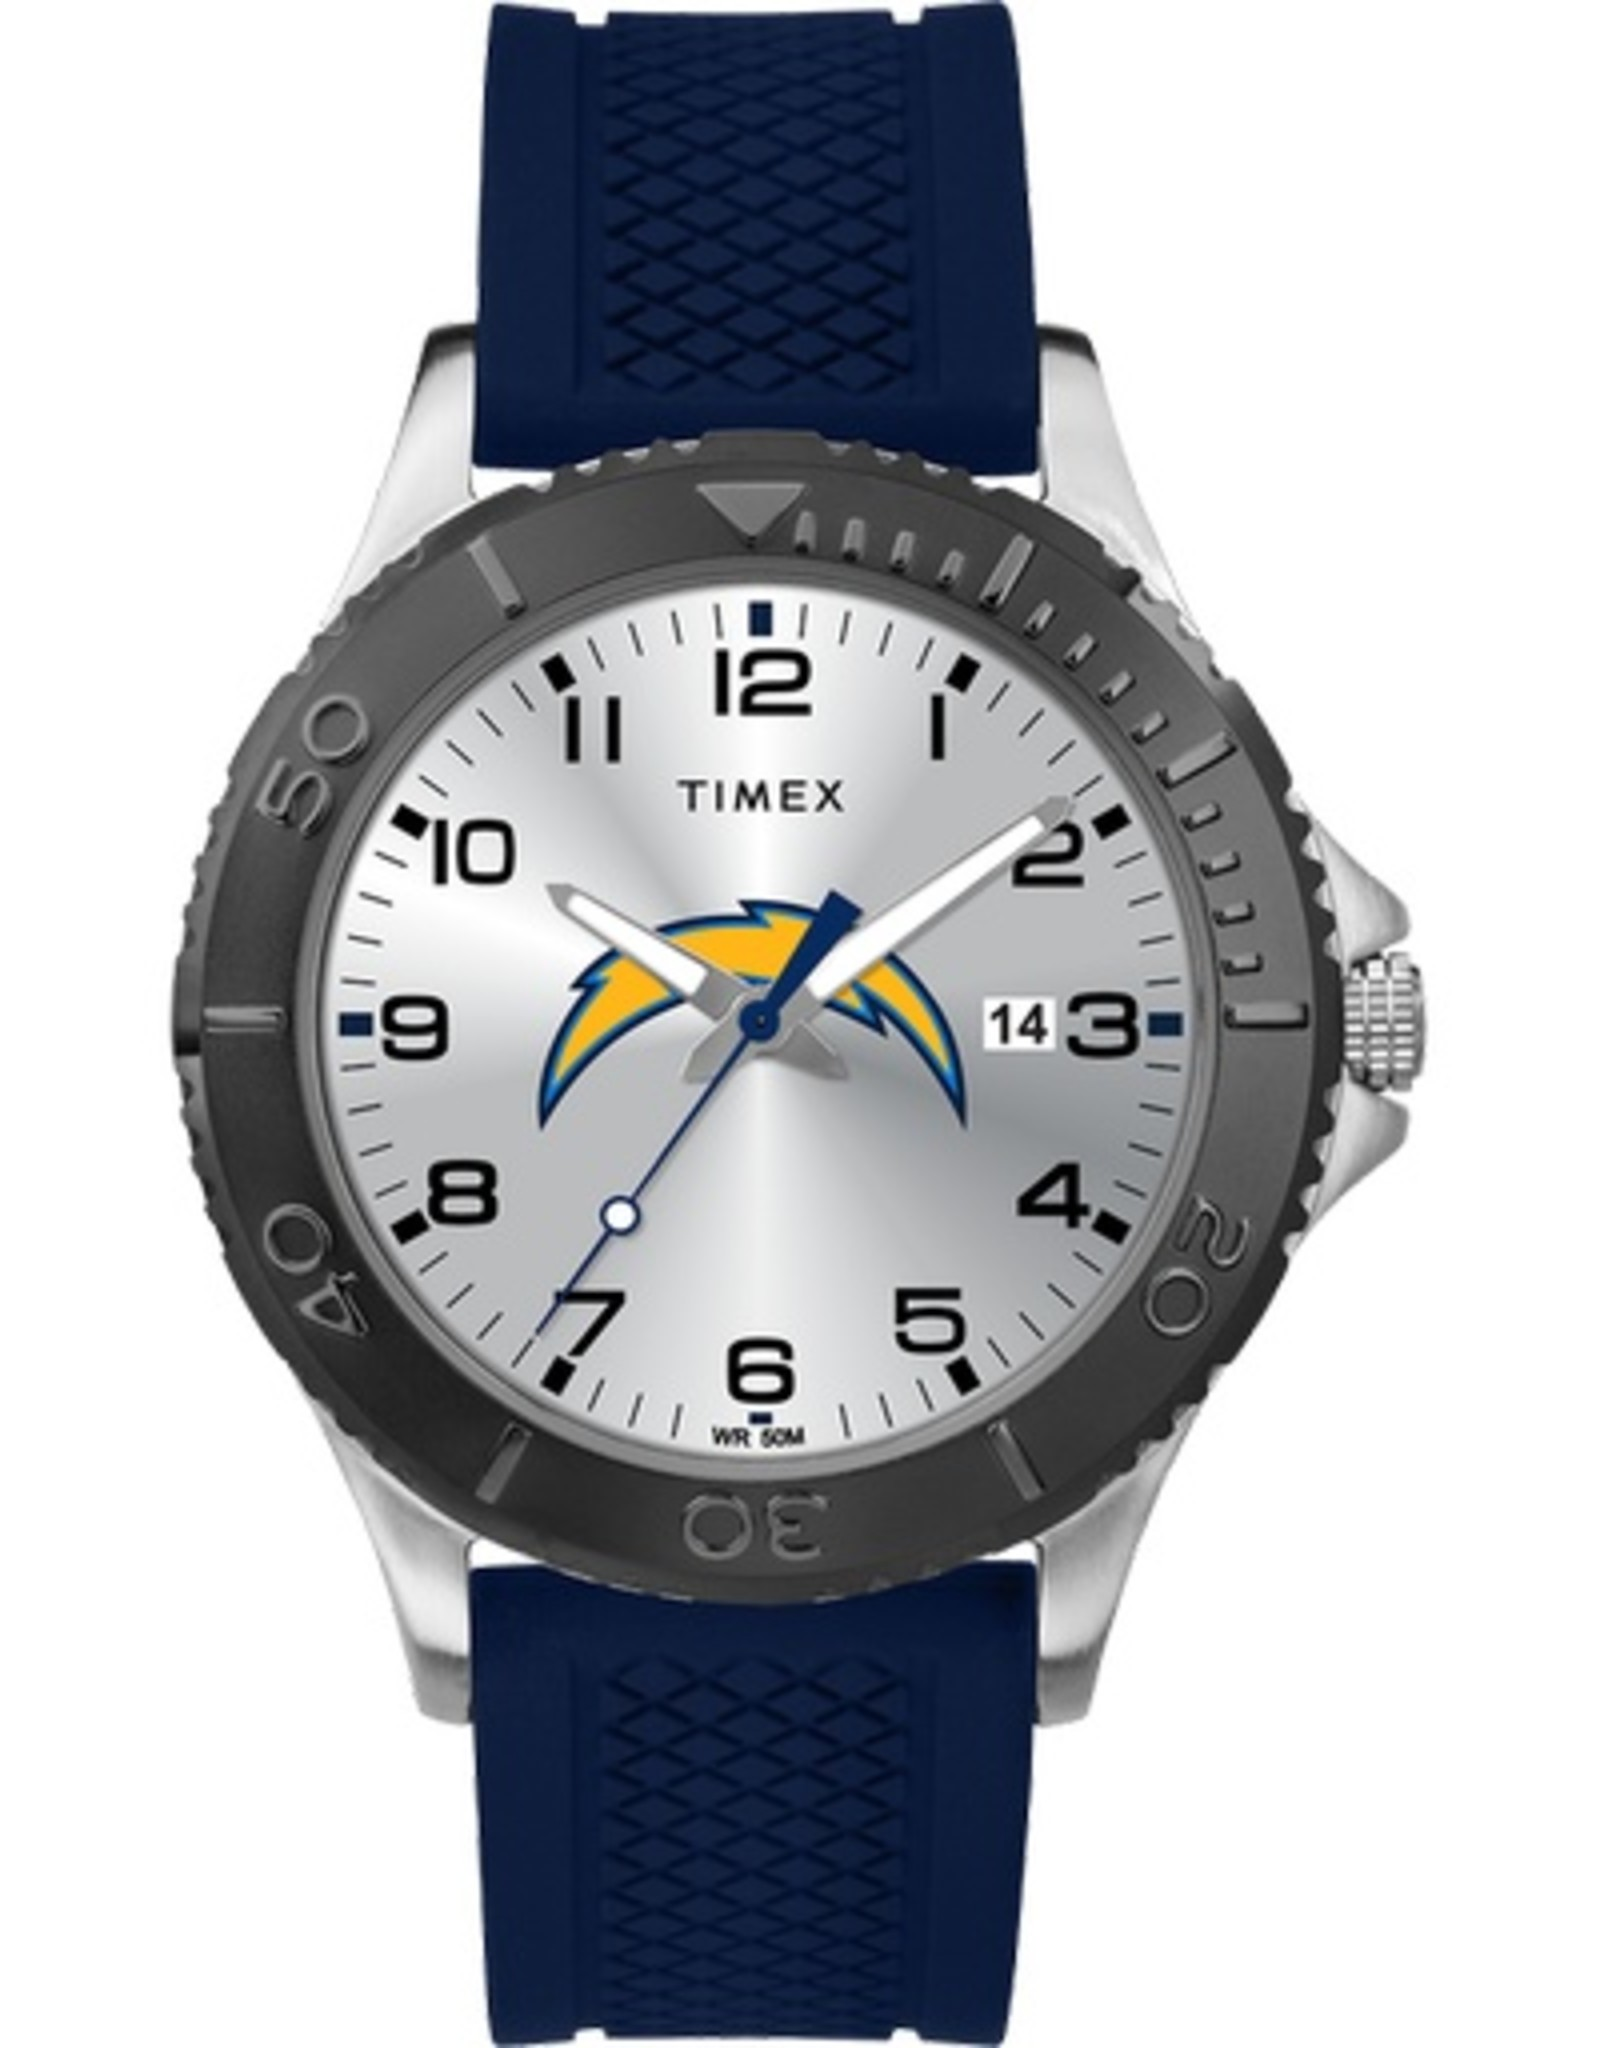 Los Angeles Chargers Timex Gamer Watch